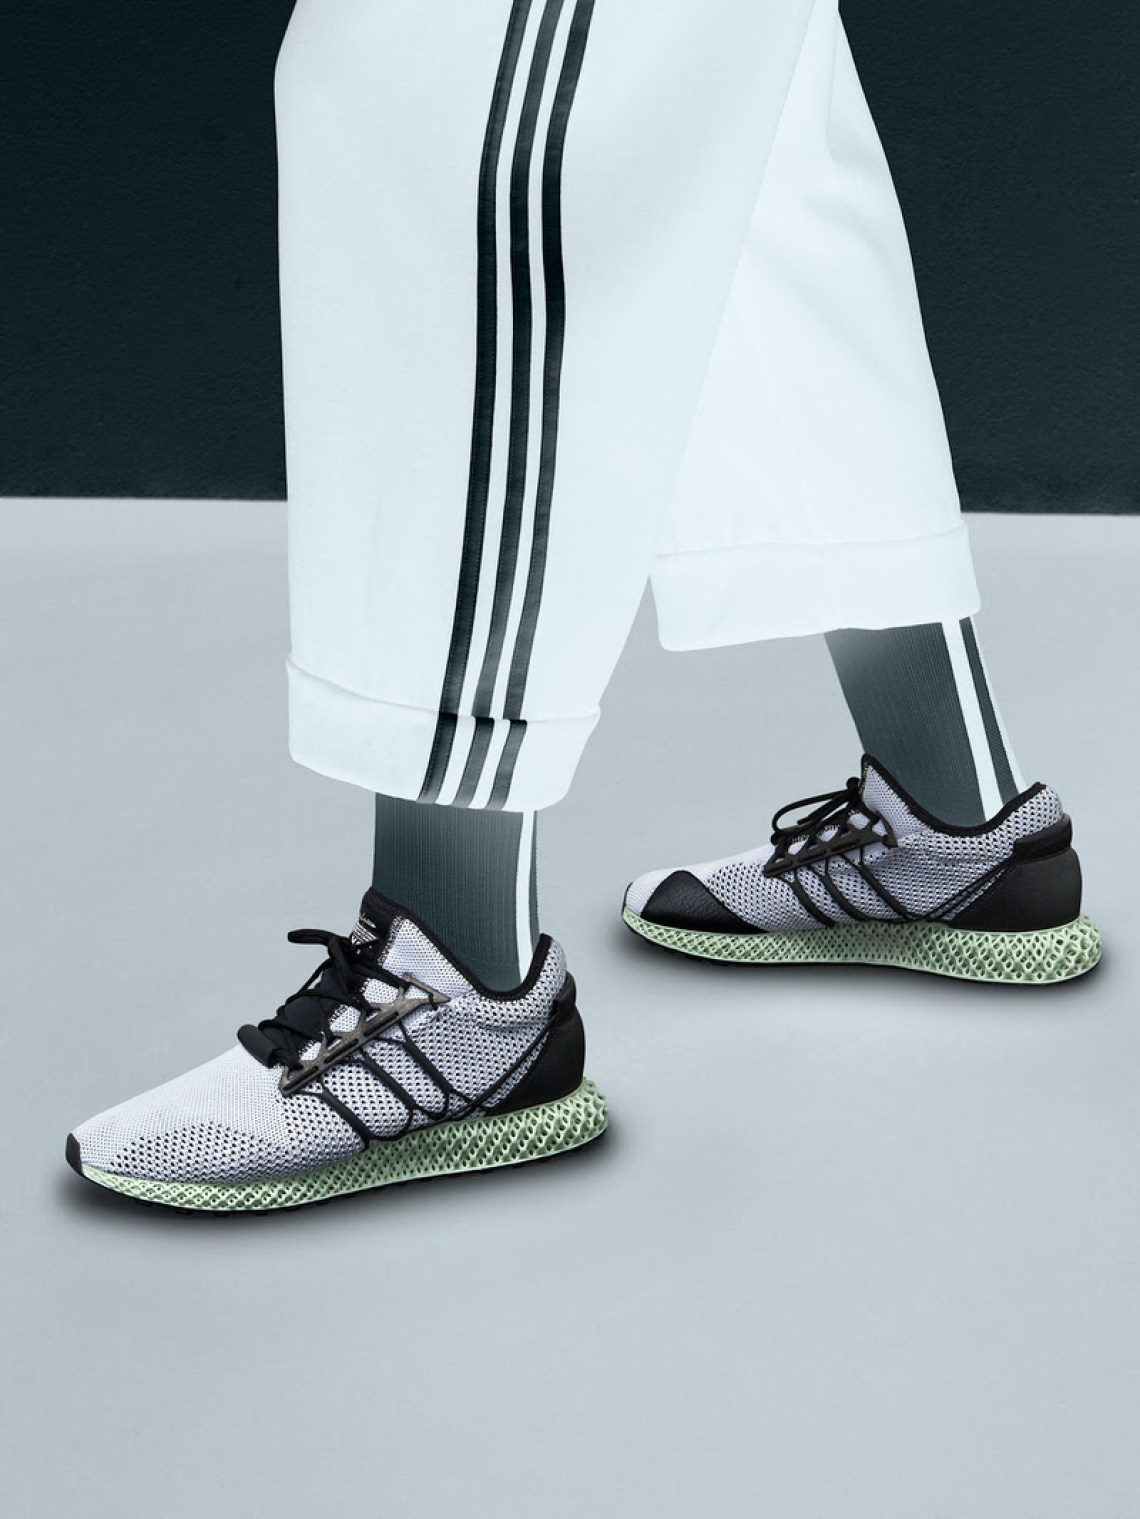 7fb4fbb05 adidas Y-3 Runner 4D Release Date